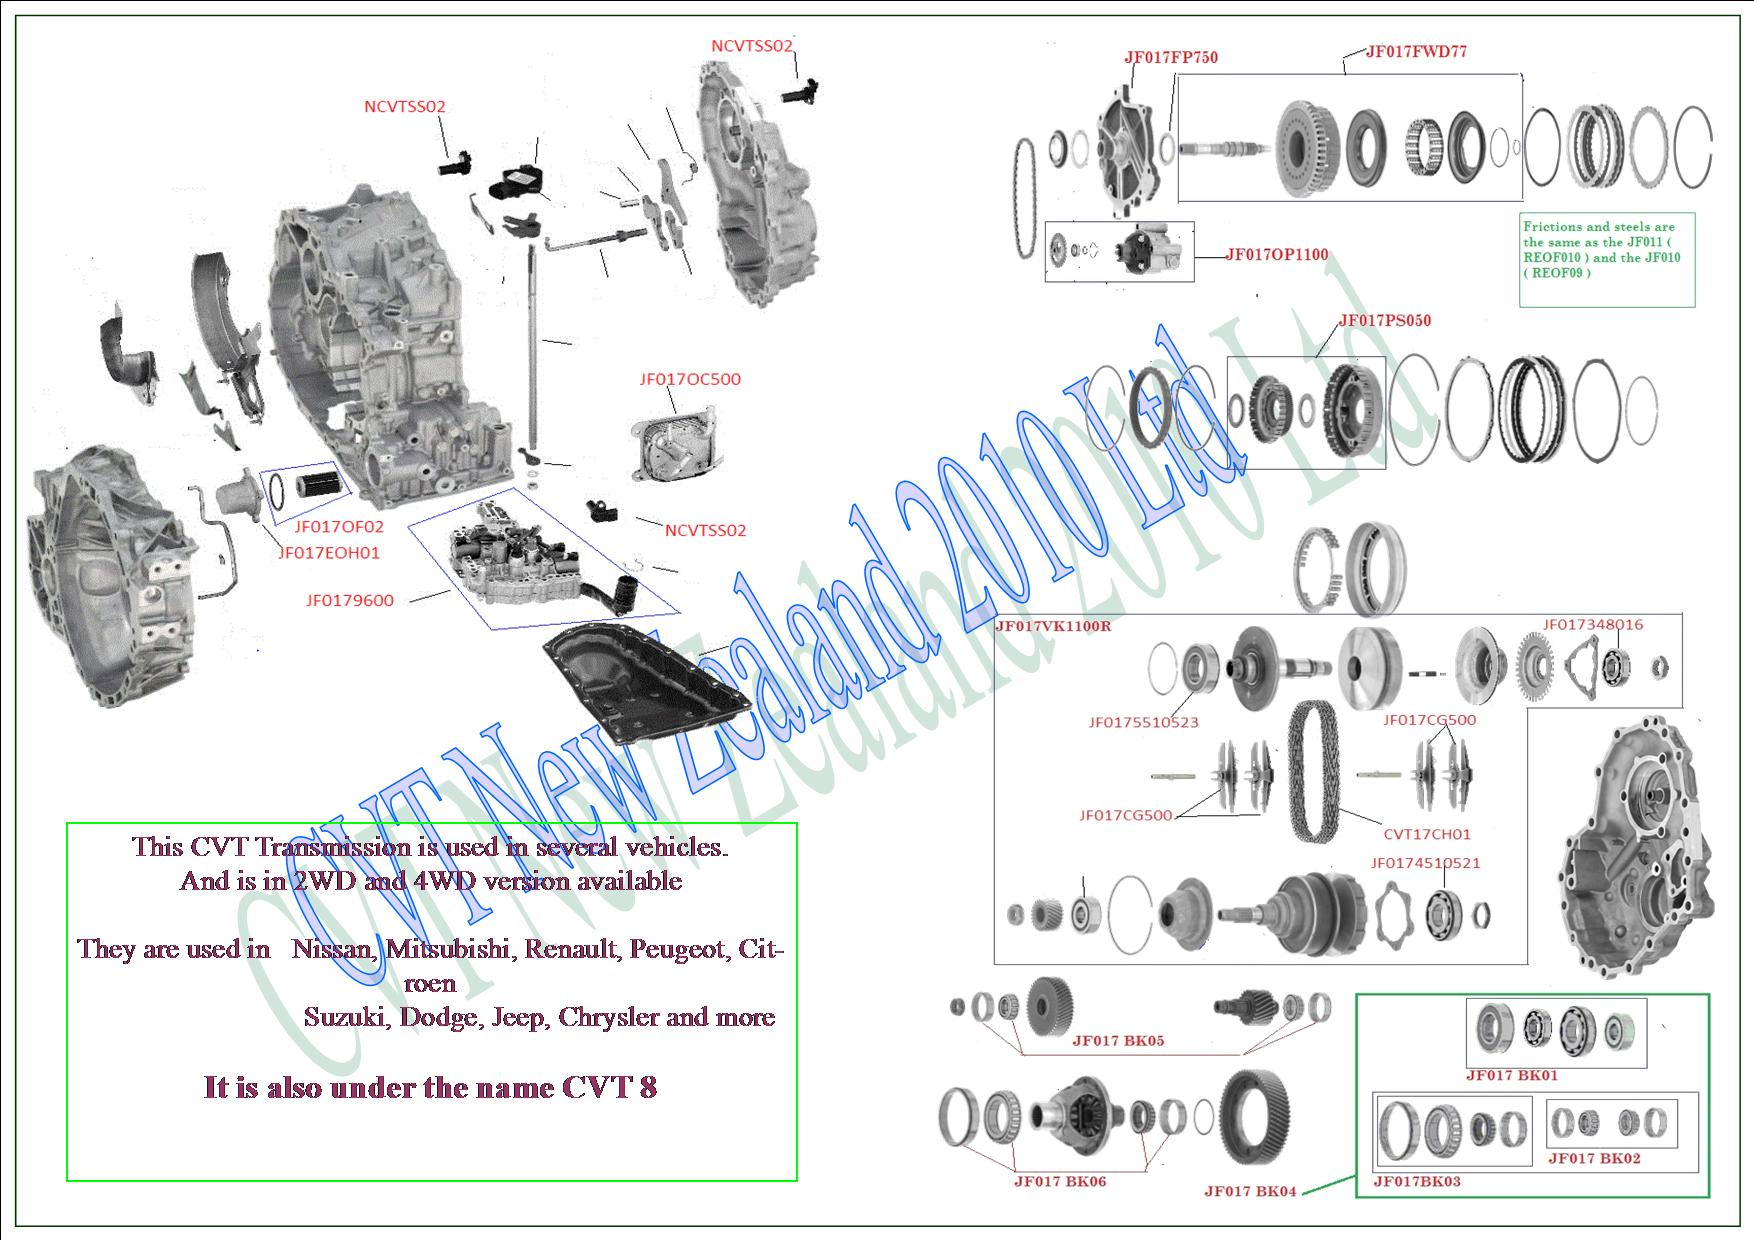 Rav4 Body Parts >> Mitsubishi CVT - JF017 CVT Transmission - CVT Parts Limited